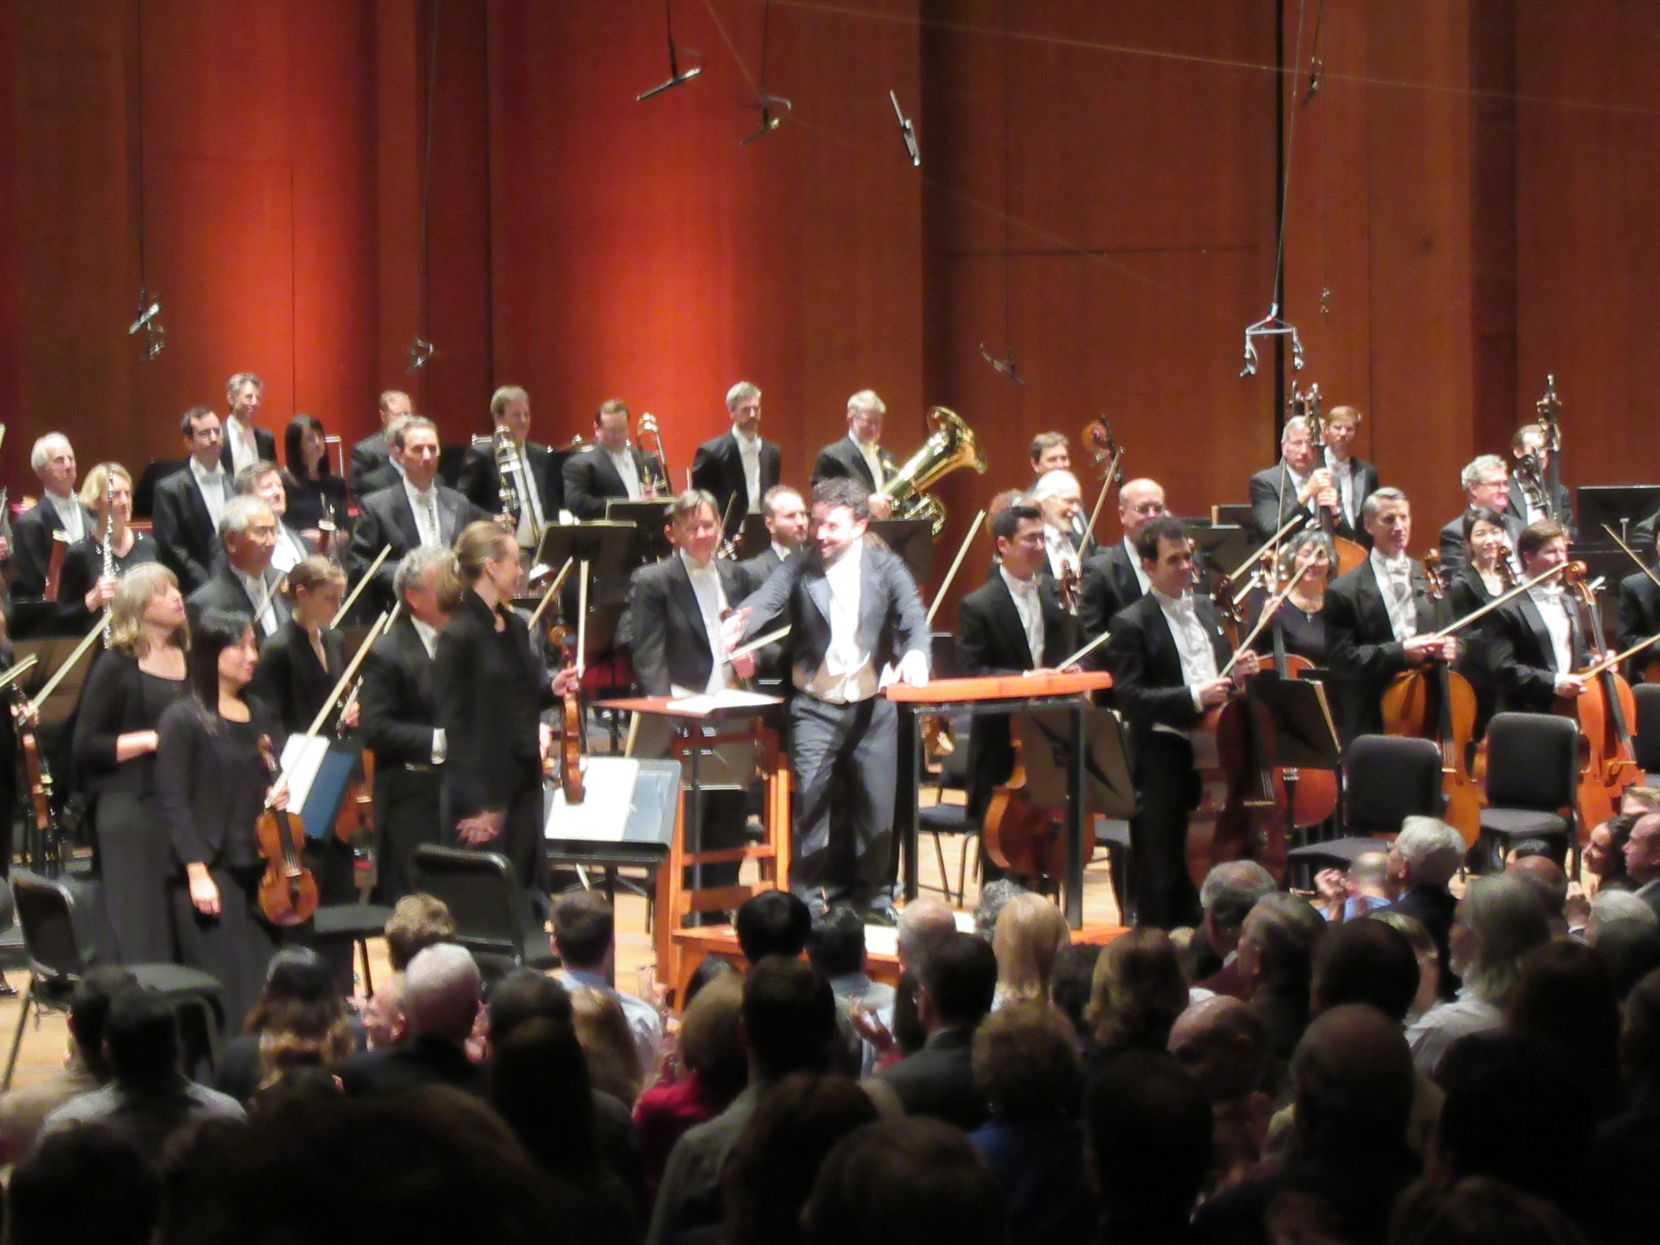 Guest conductor James Gaffigan acknowledges applause of the audience at a Houston Symphony concert Jan. 14, 2017 at Jones Hall in Houston.